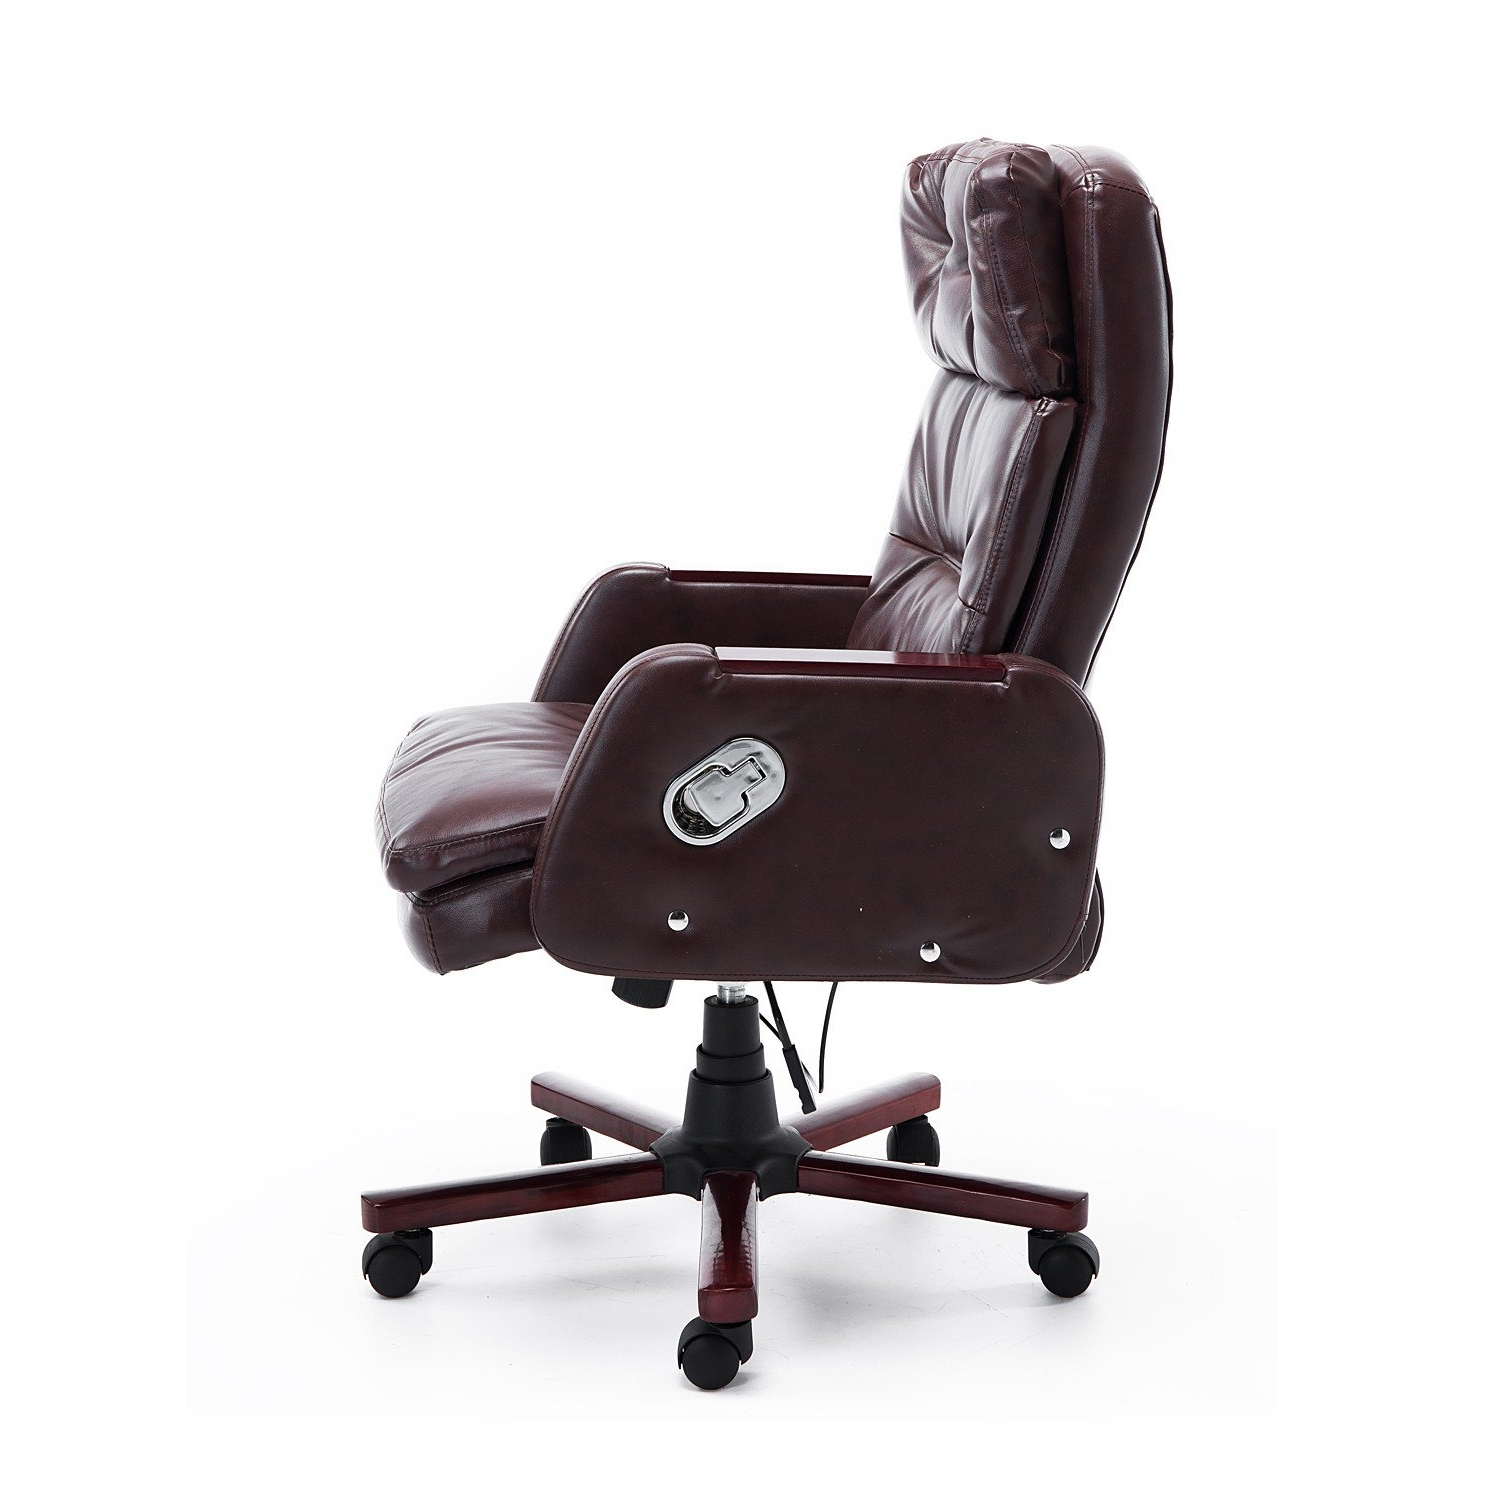 Homcom Faux Leather Reclining Office Chair Seat With Adjustable Throughout Most Up To Date Executive Office Chairs With Adjustable Lumbar Support (View 9 of 20)